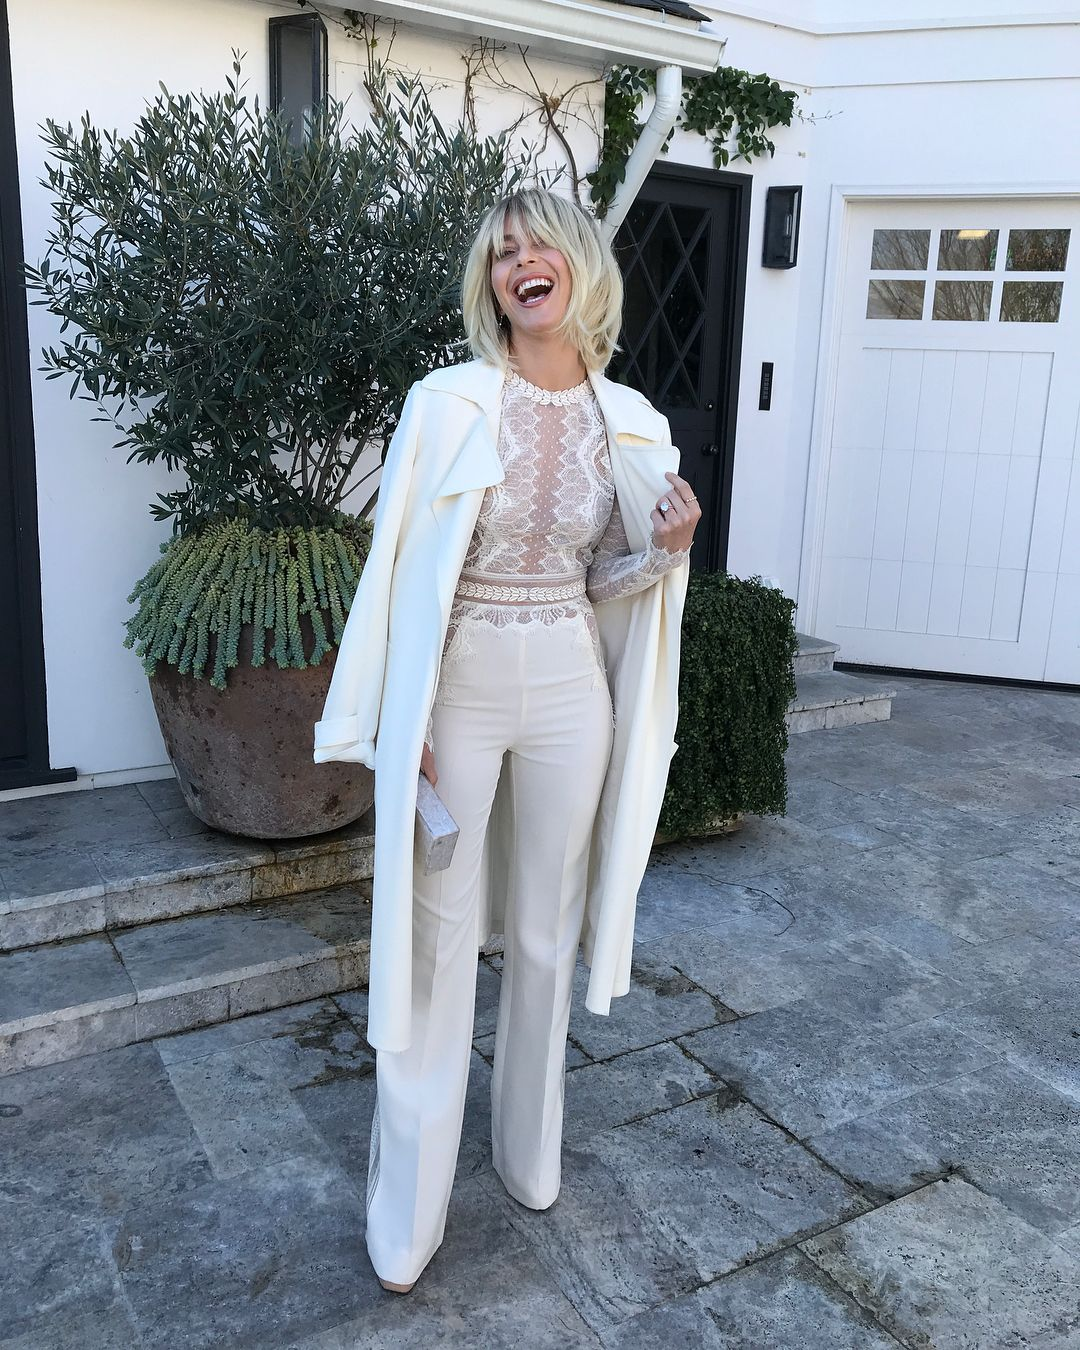 Julianne Hough Just Got Long, Shaggy Bangs and They Look SO '60s #juliannehoughstyle